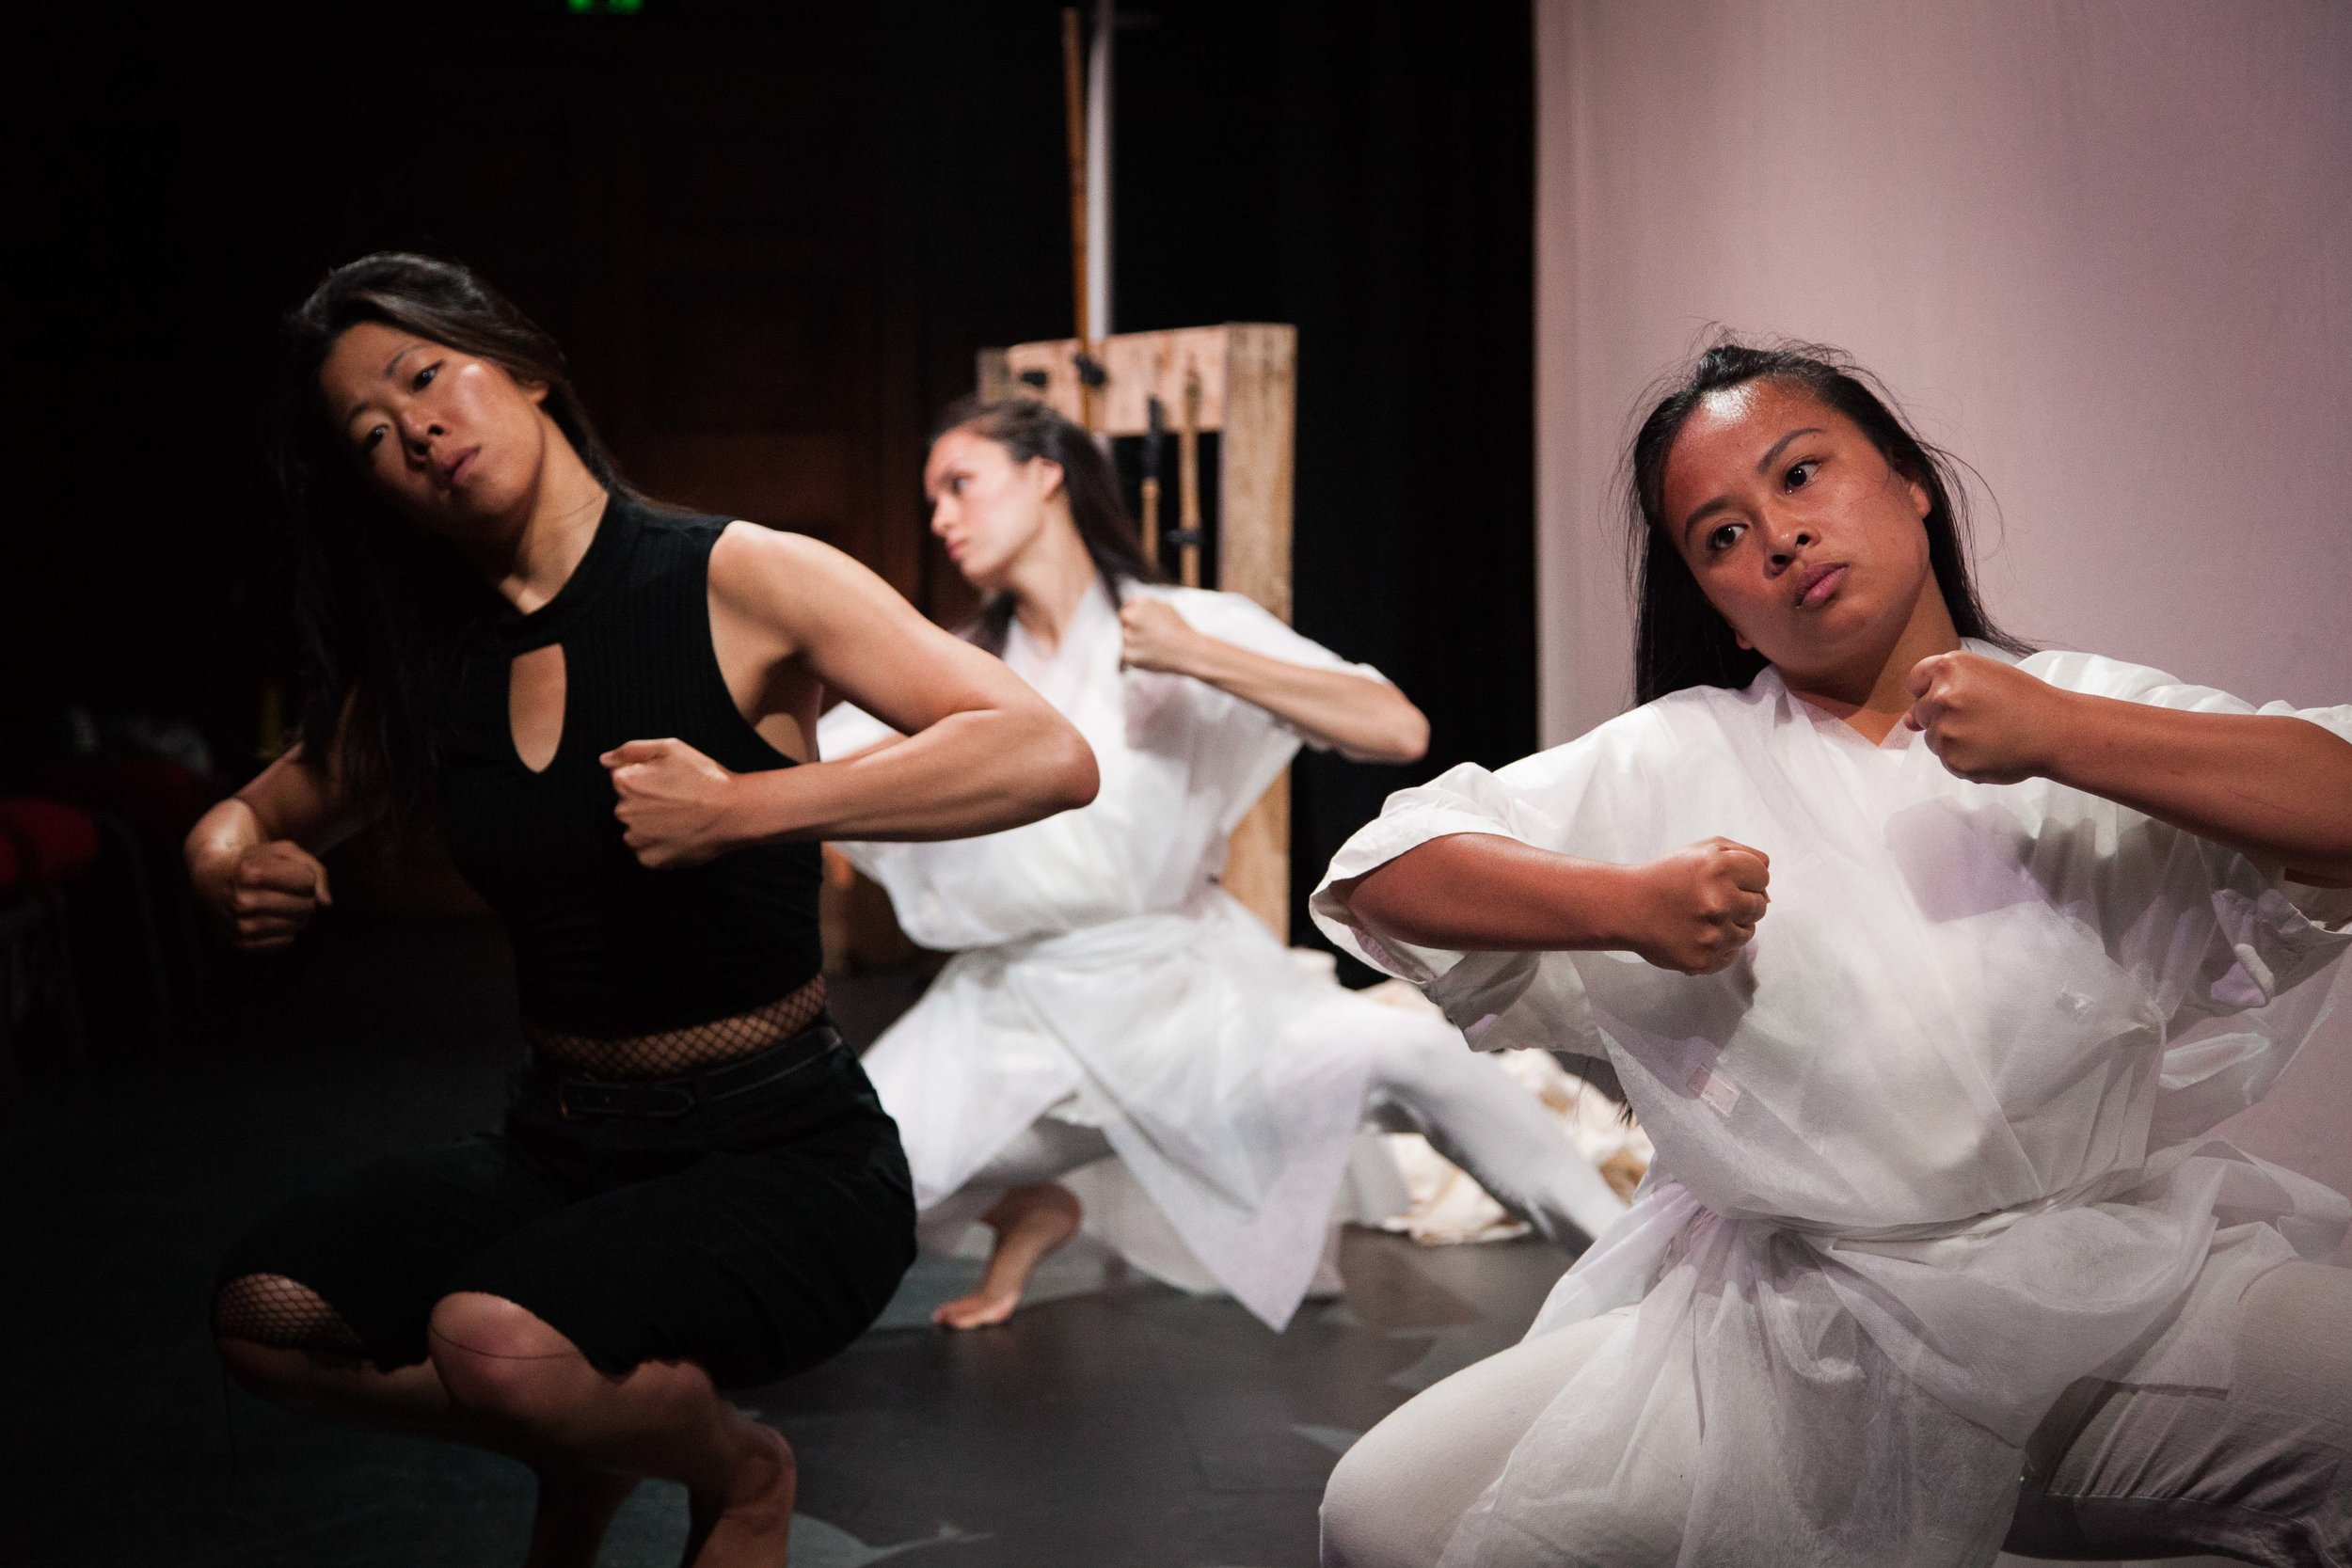 Nikita Tu-Bryant, Chye-Ling Huang and Marianne Infante